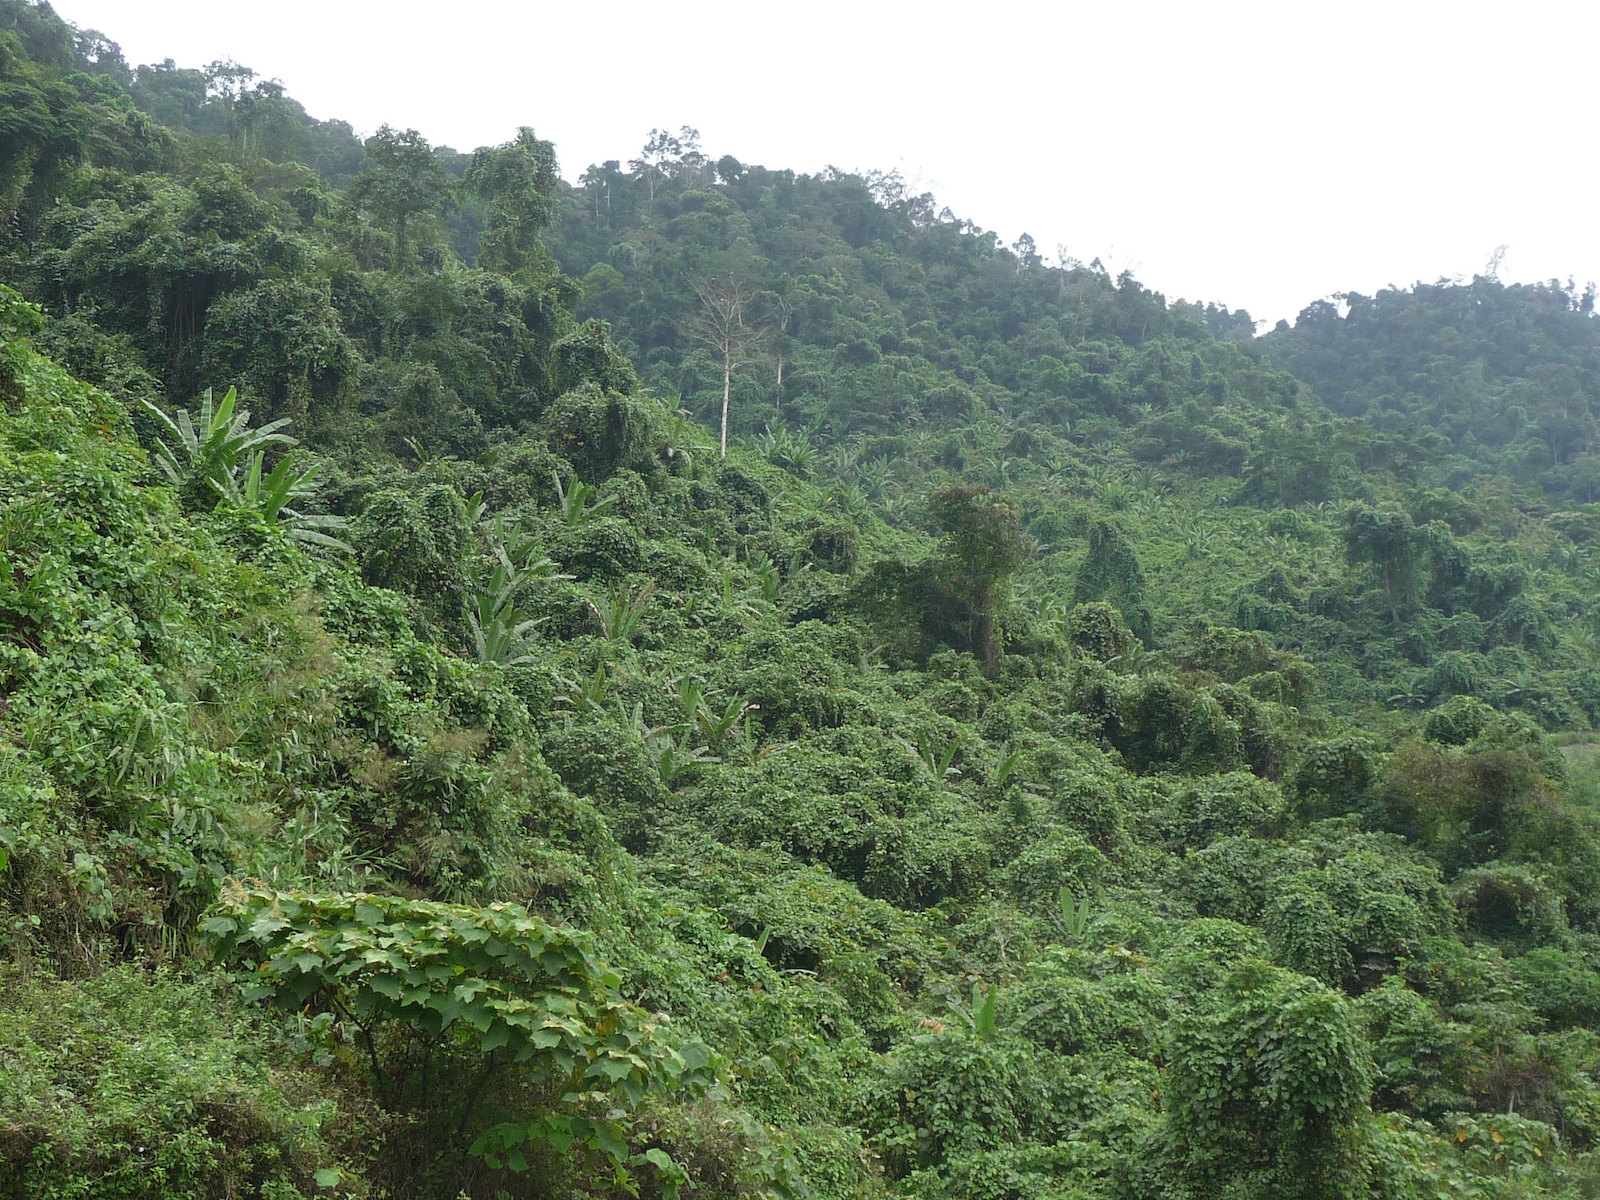 Image of jungle foliage in Vietnam's Central Highlands